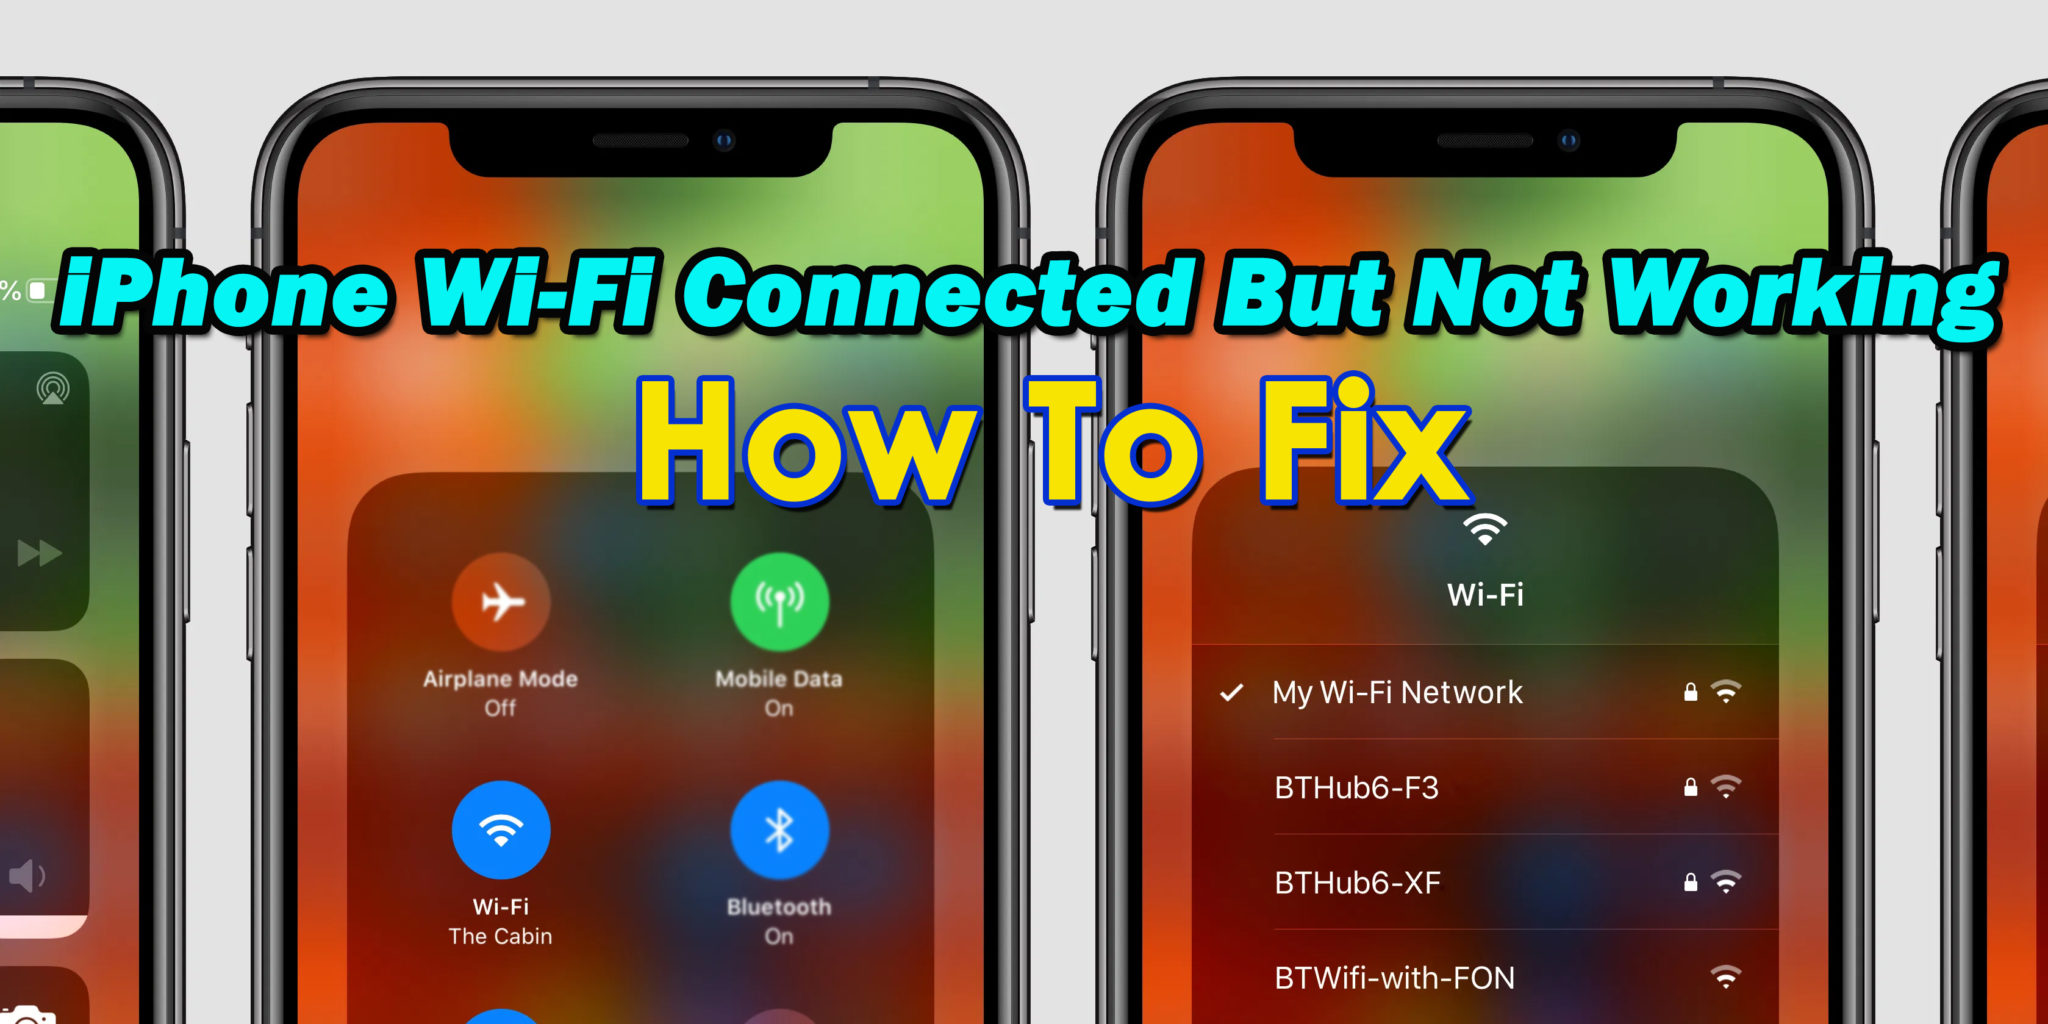 iPhone Wi-Fi Connected But Not Working